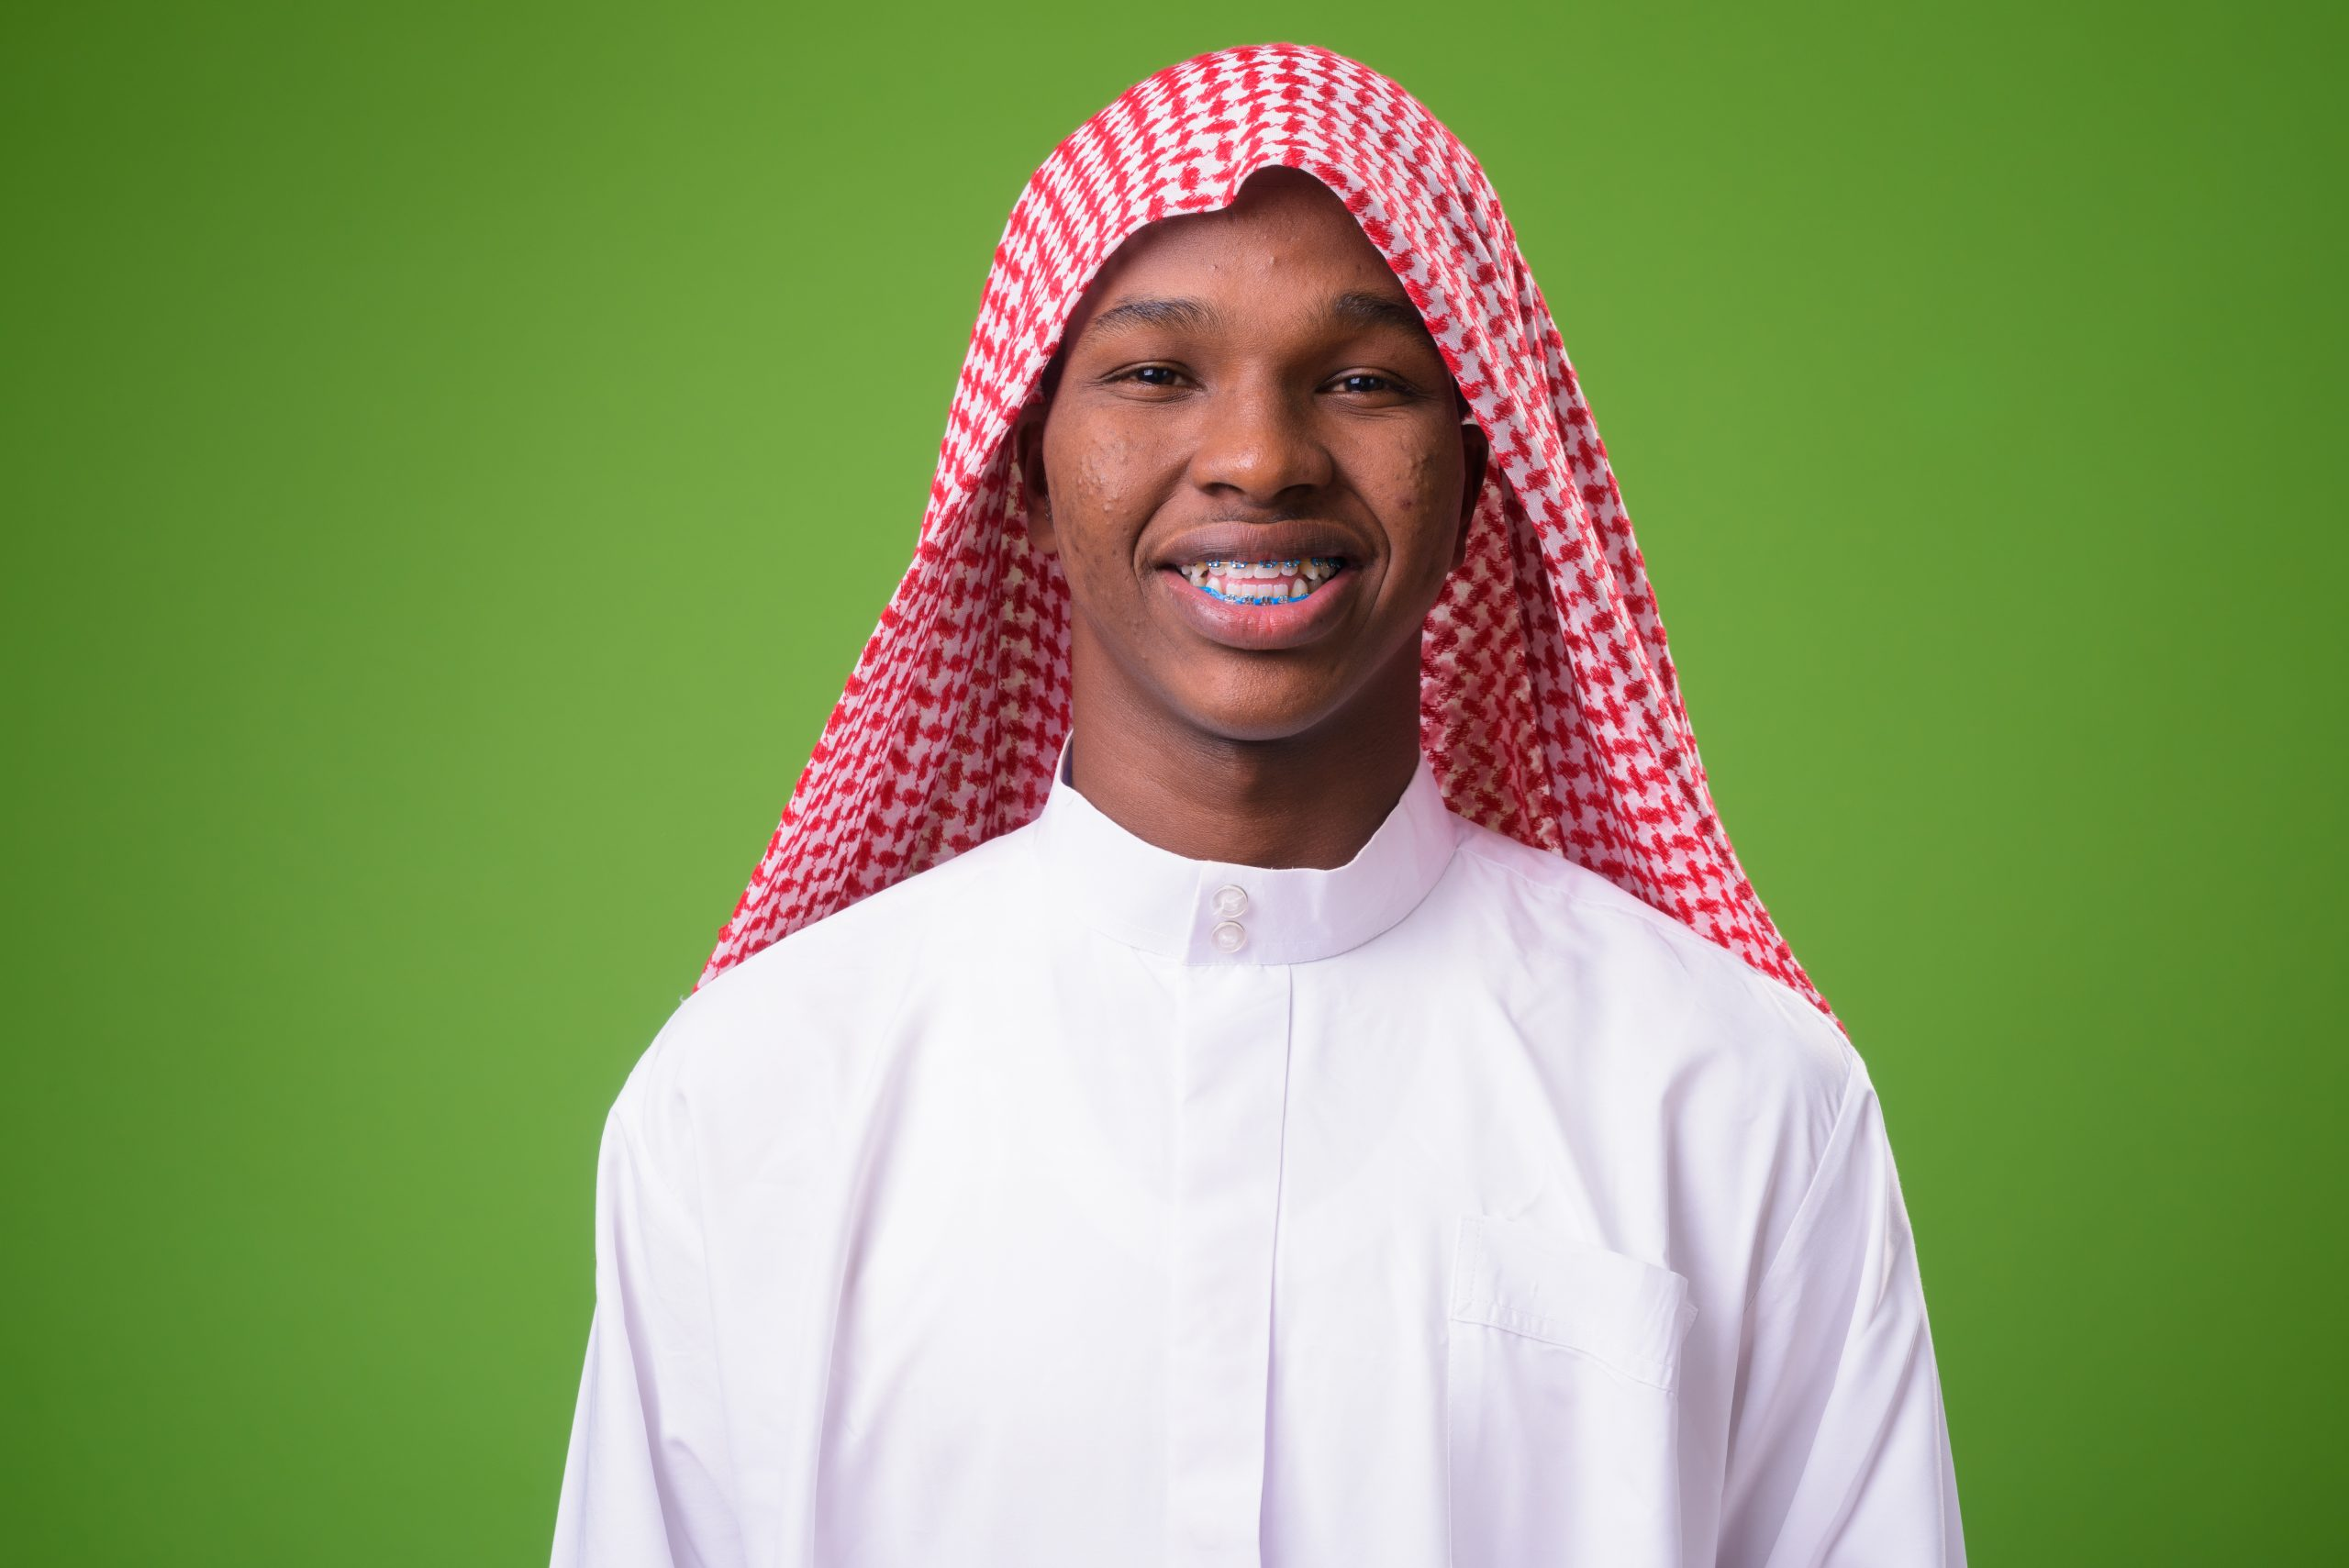 Studio shot of young African man wearing traditional Muslim clothes against green background